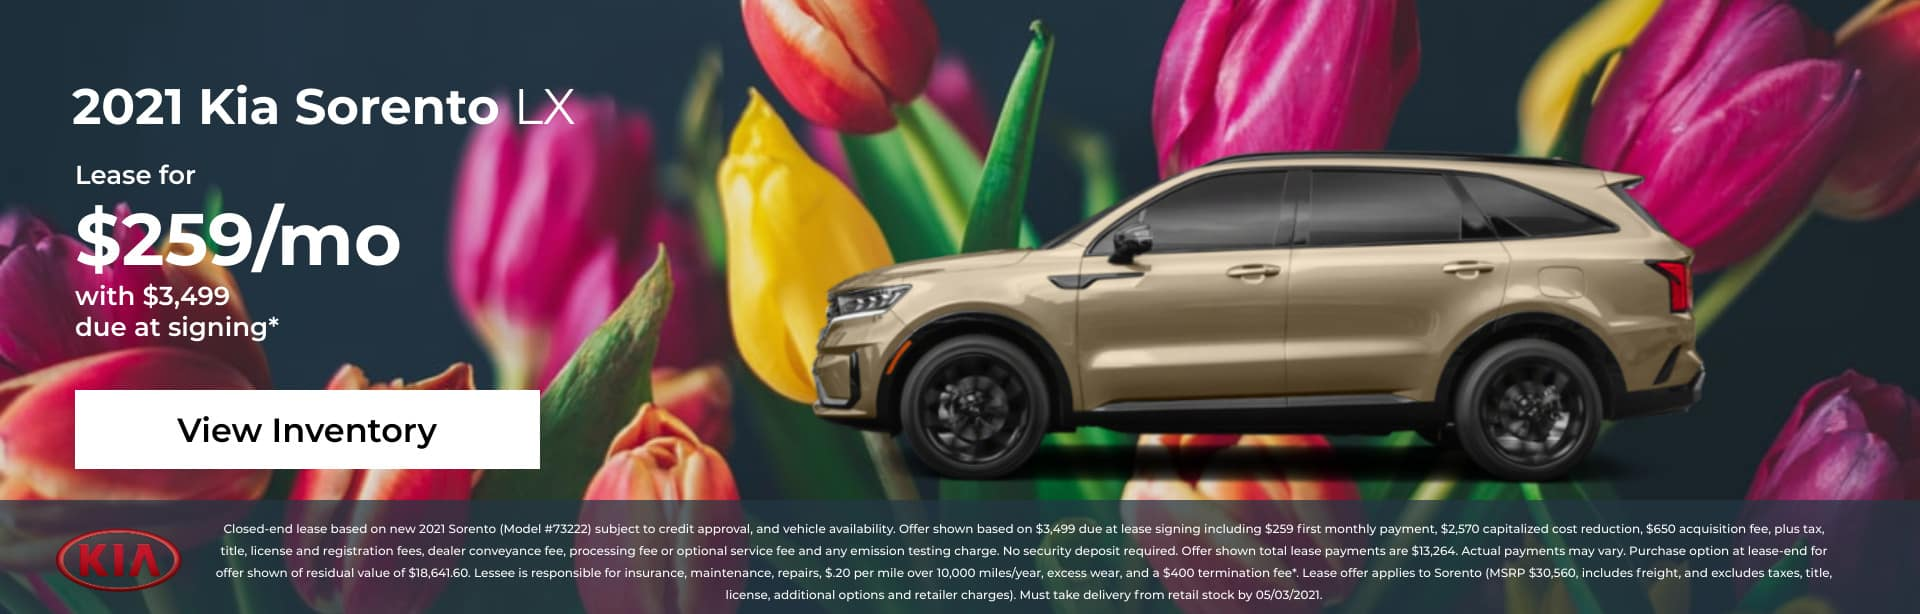 2021 Kia Sorento LX: Lease for $259/mo with $3,499 due at signing*